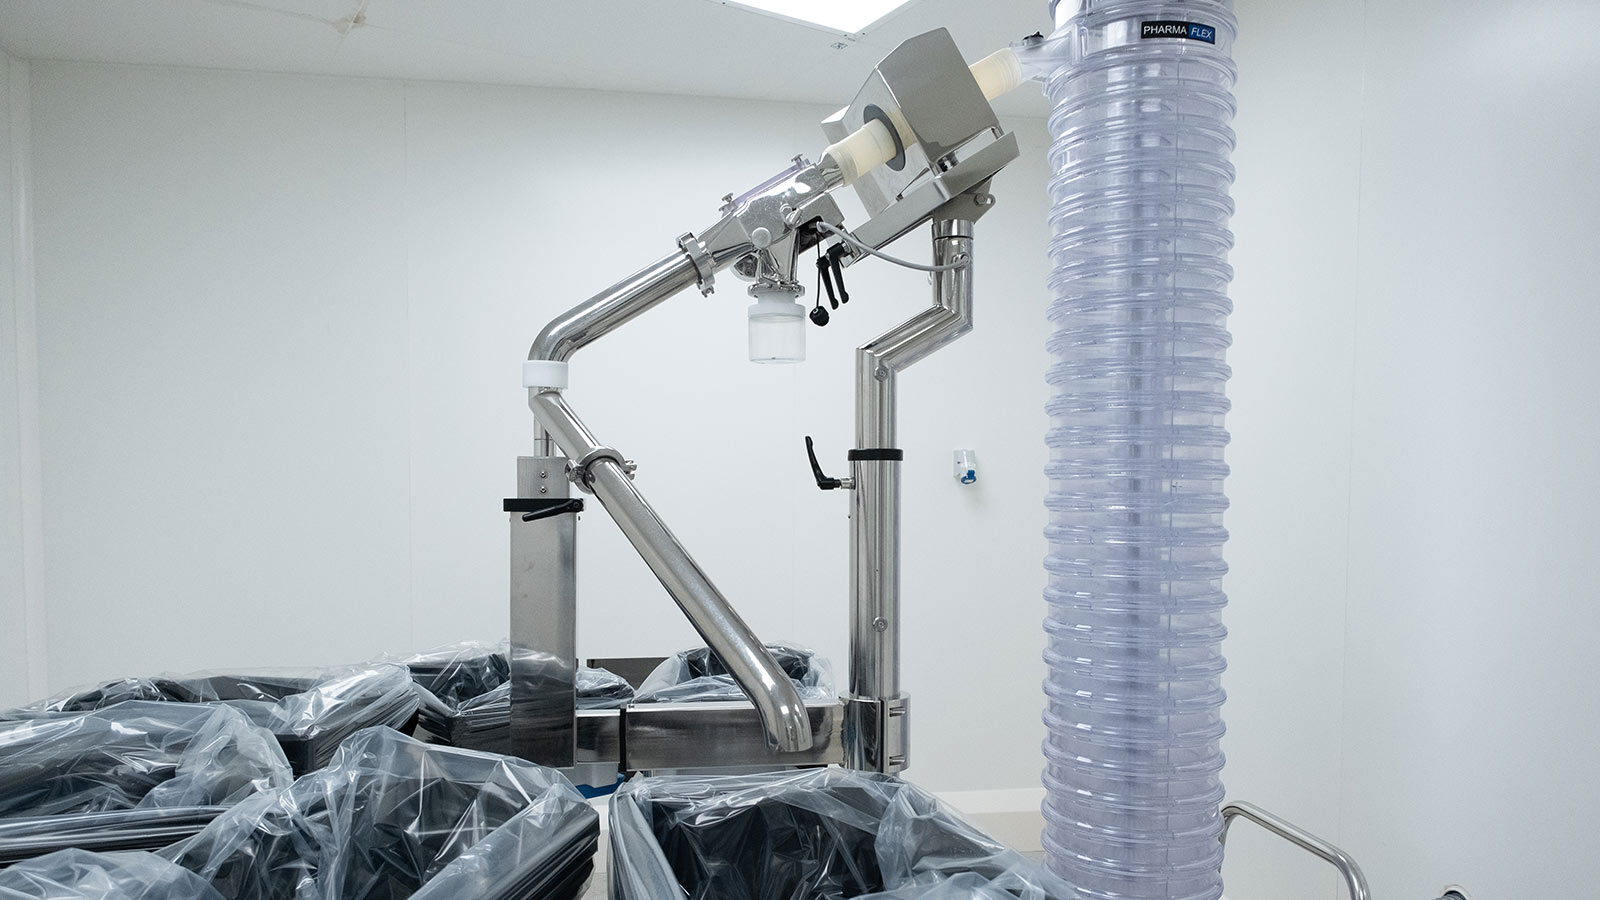 Tableting machine in a clean room